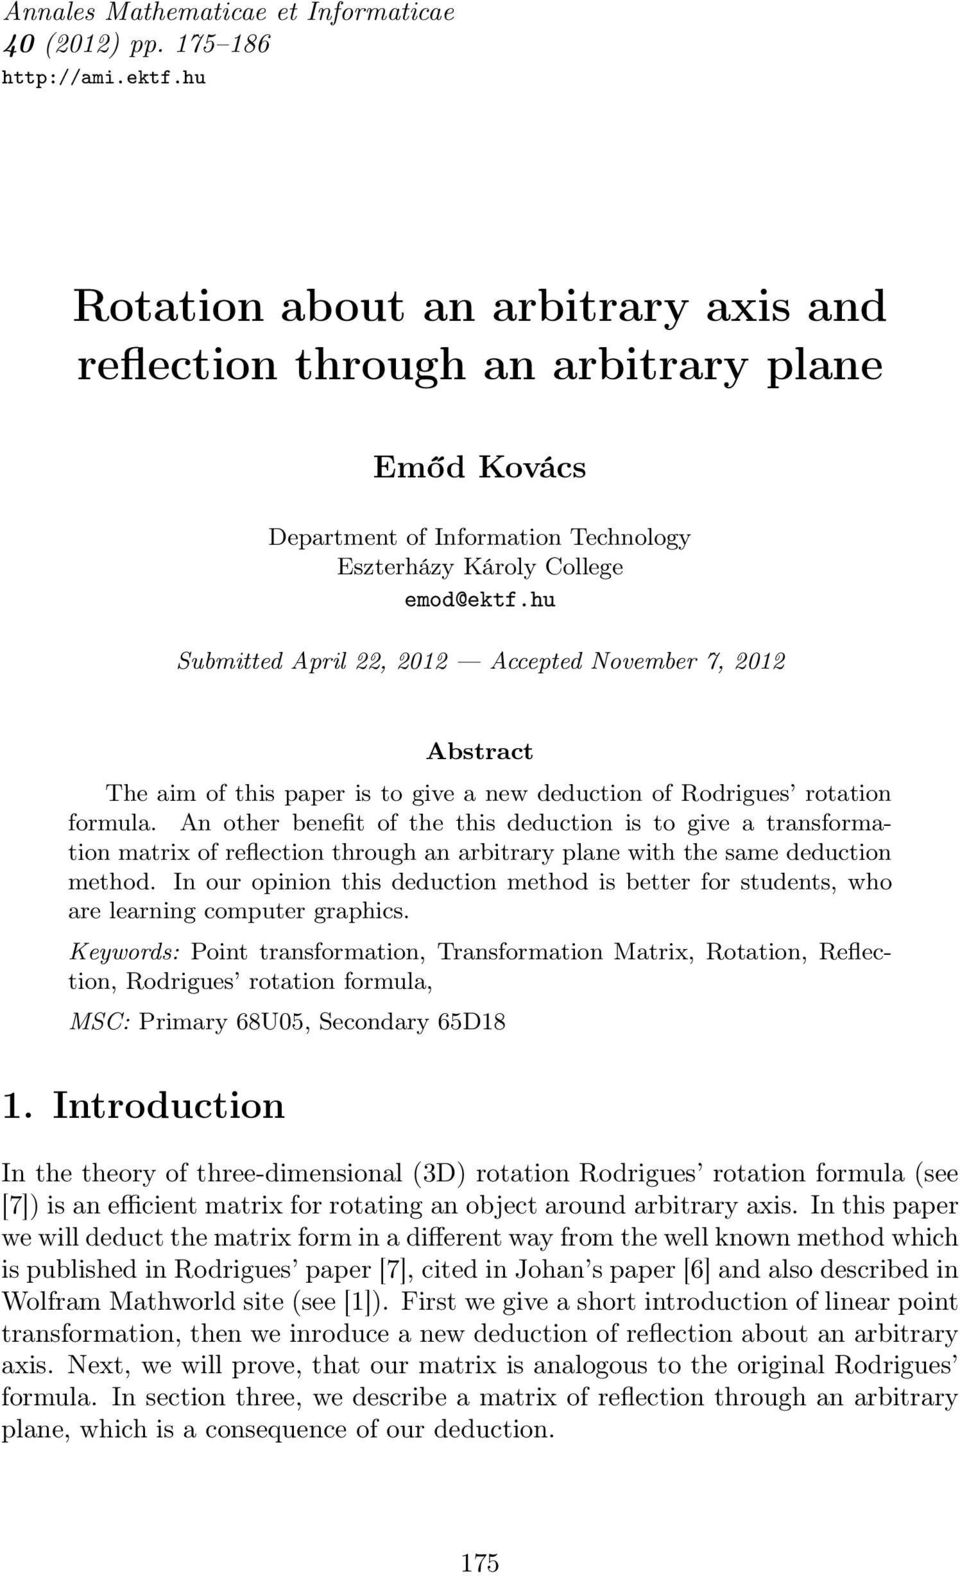 Rotation about an arbitrary axis and reflection through an